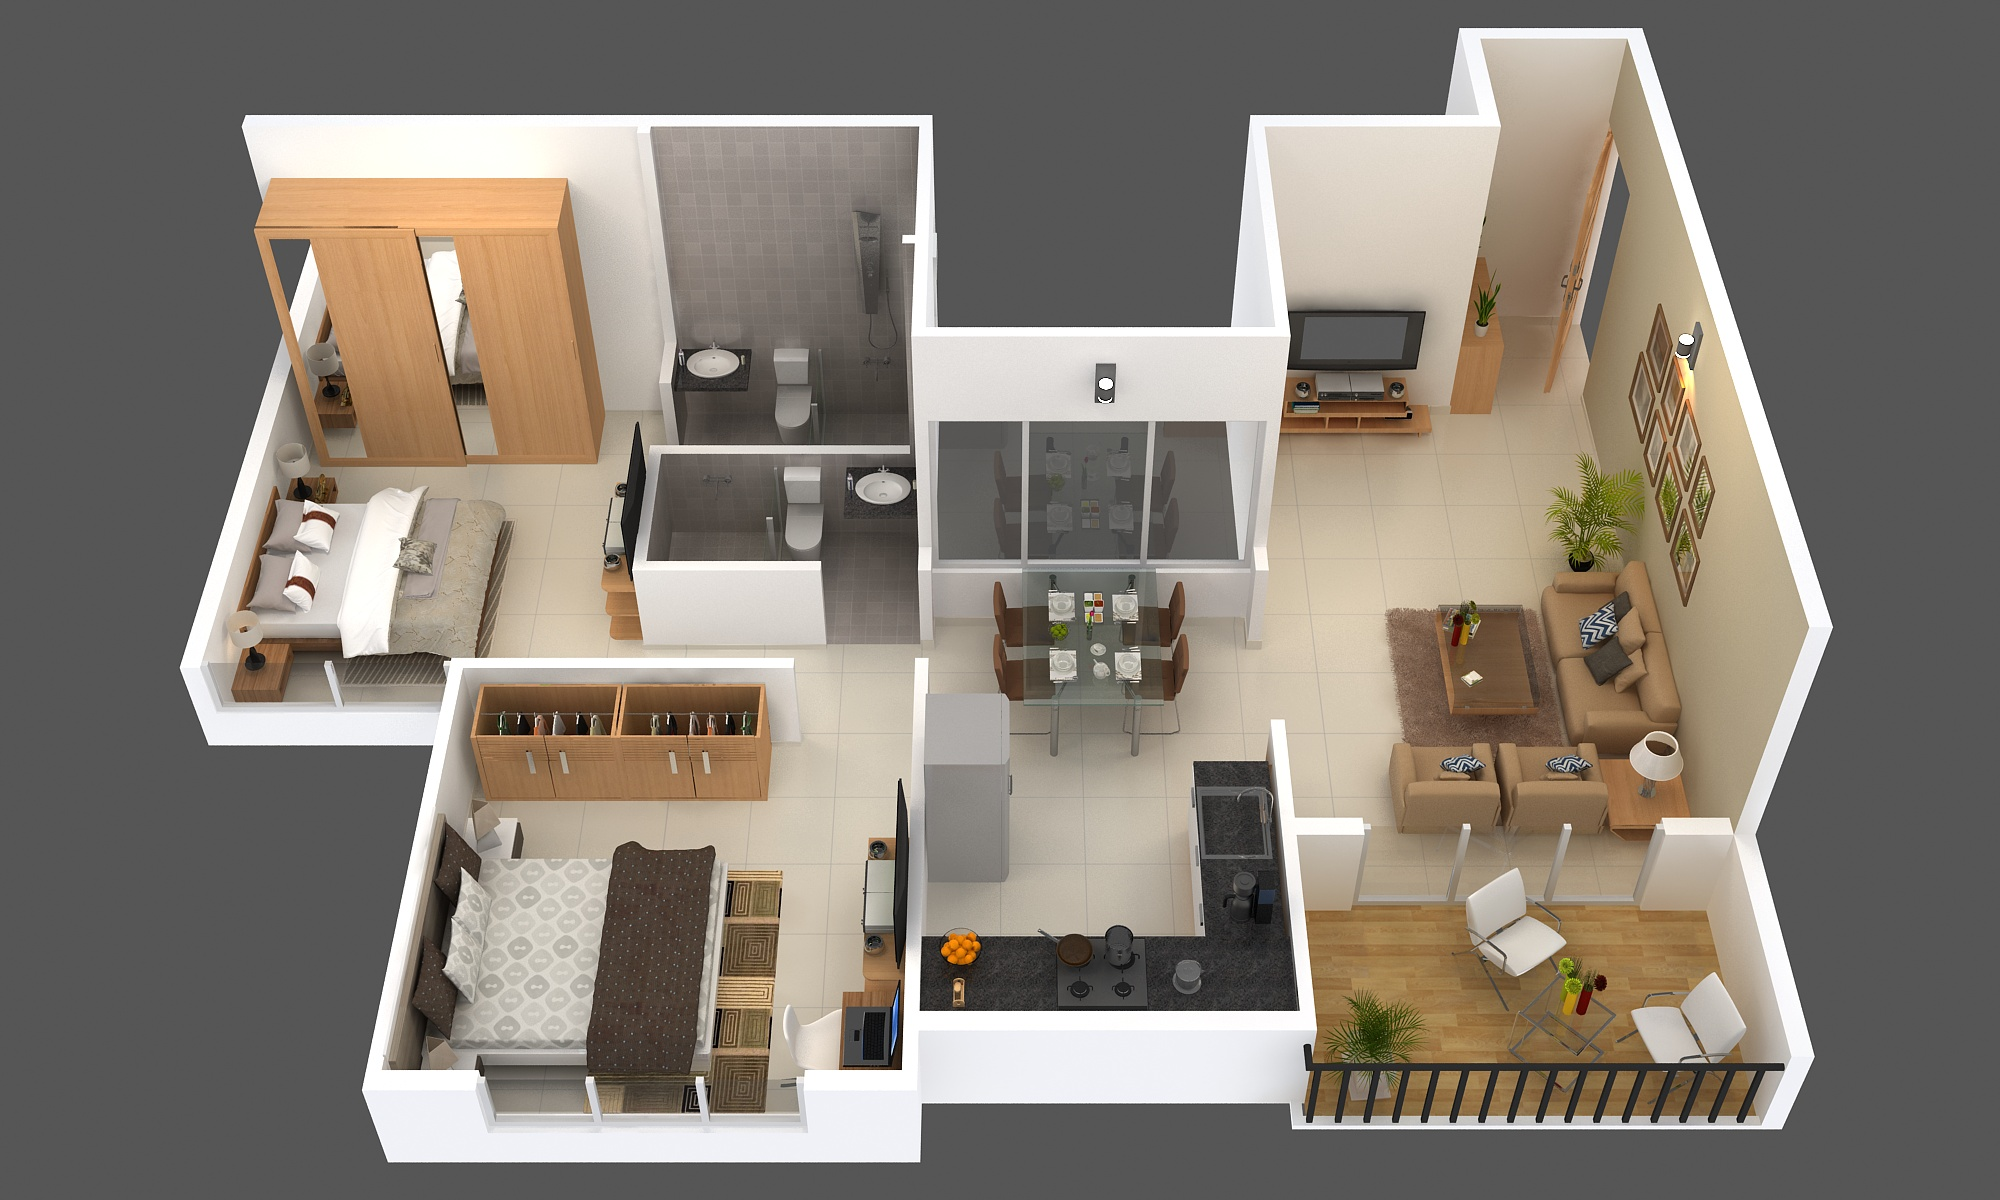 Antariksha Apartment 2BHK image.